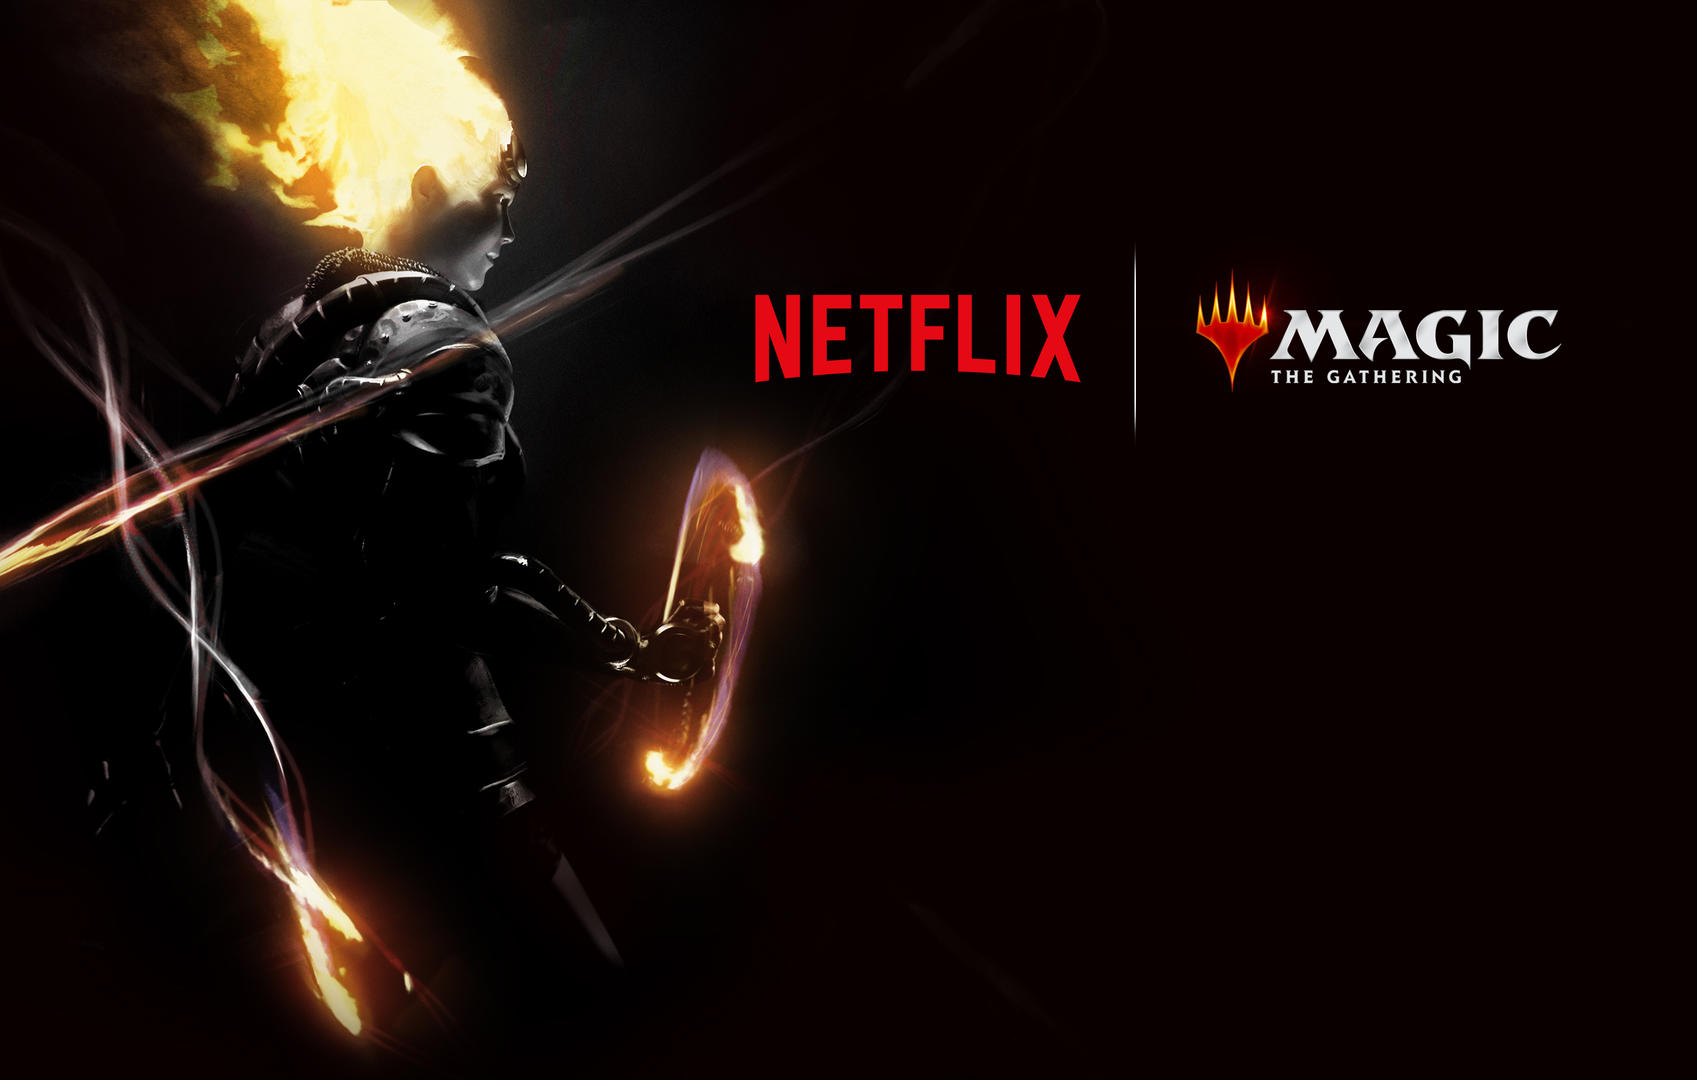 Netflix Is Making An Animated Series Based On Magic The Gathering